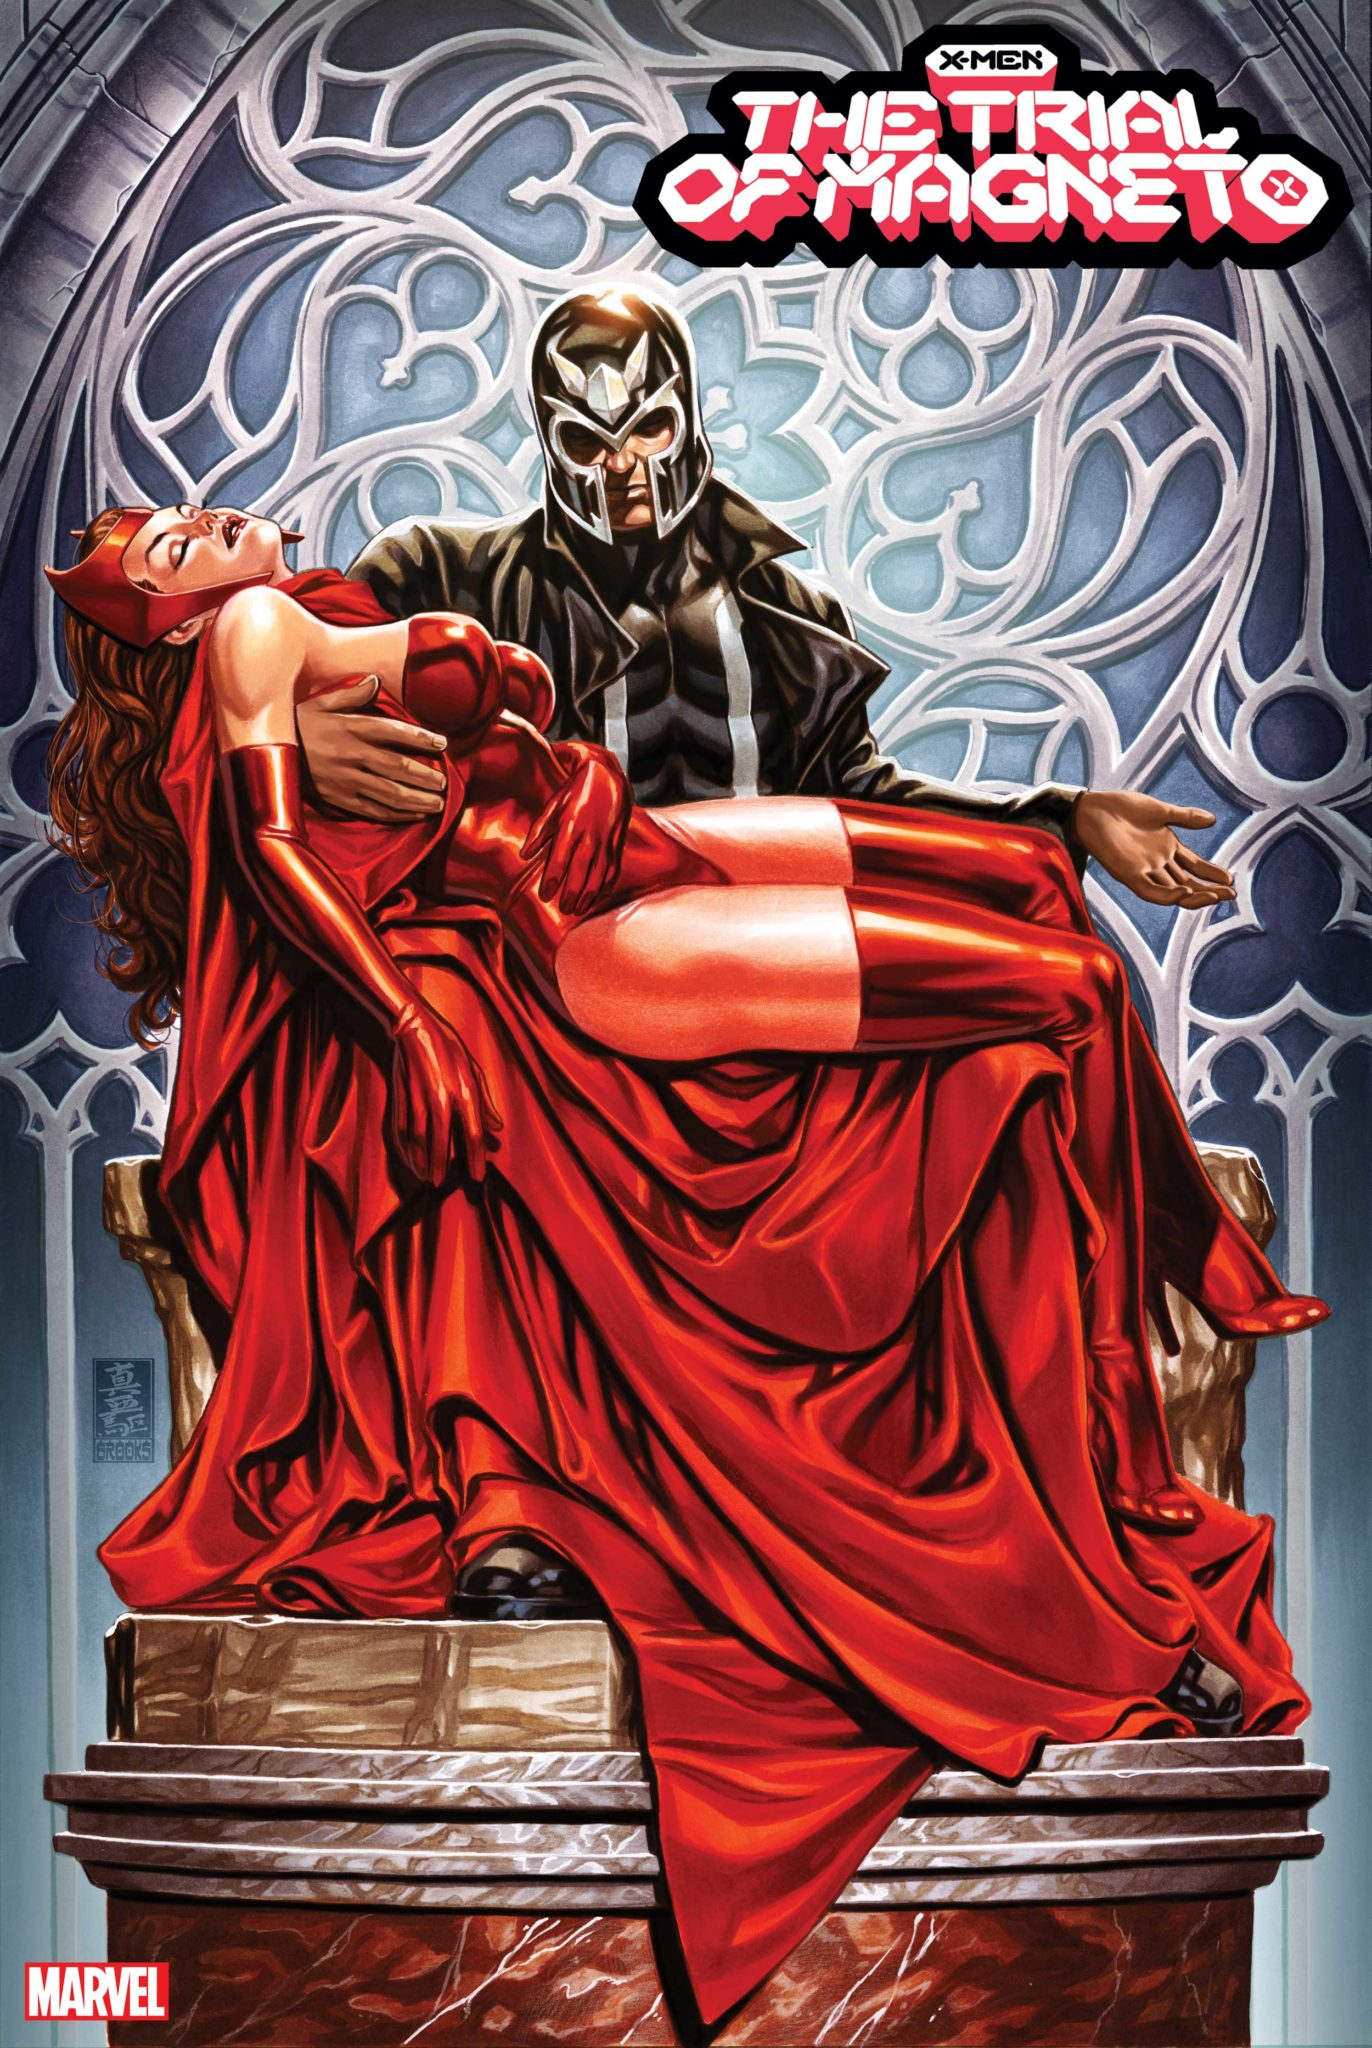 The Trial of Magneto cover art of Magneto cradling The Scarlet Witch